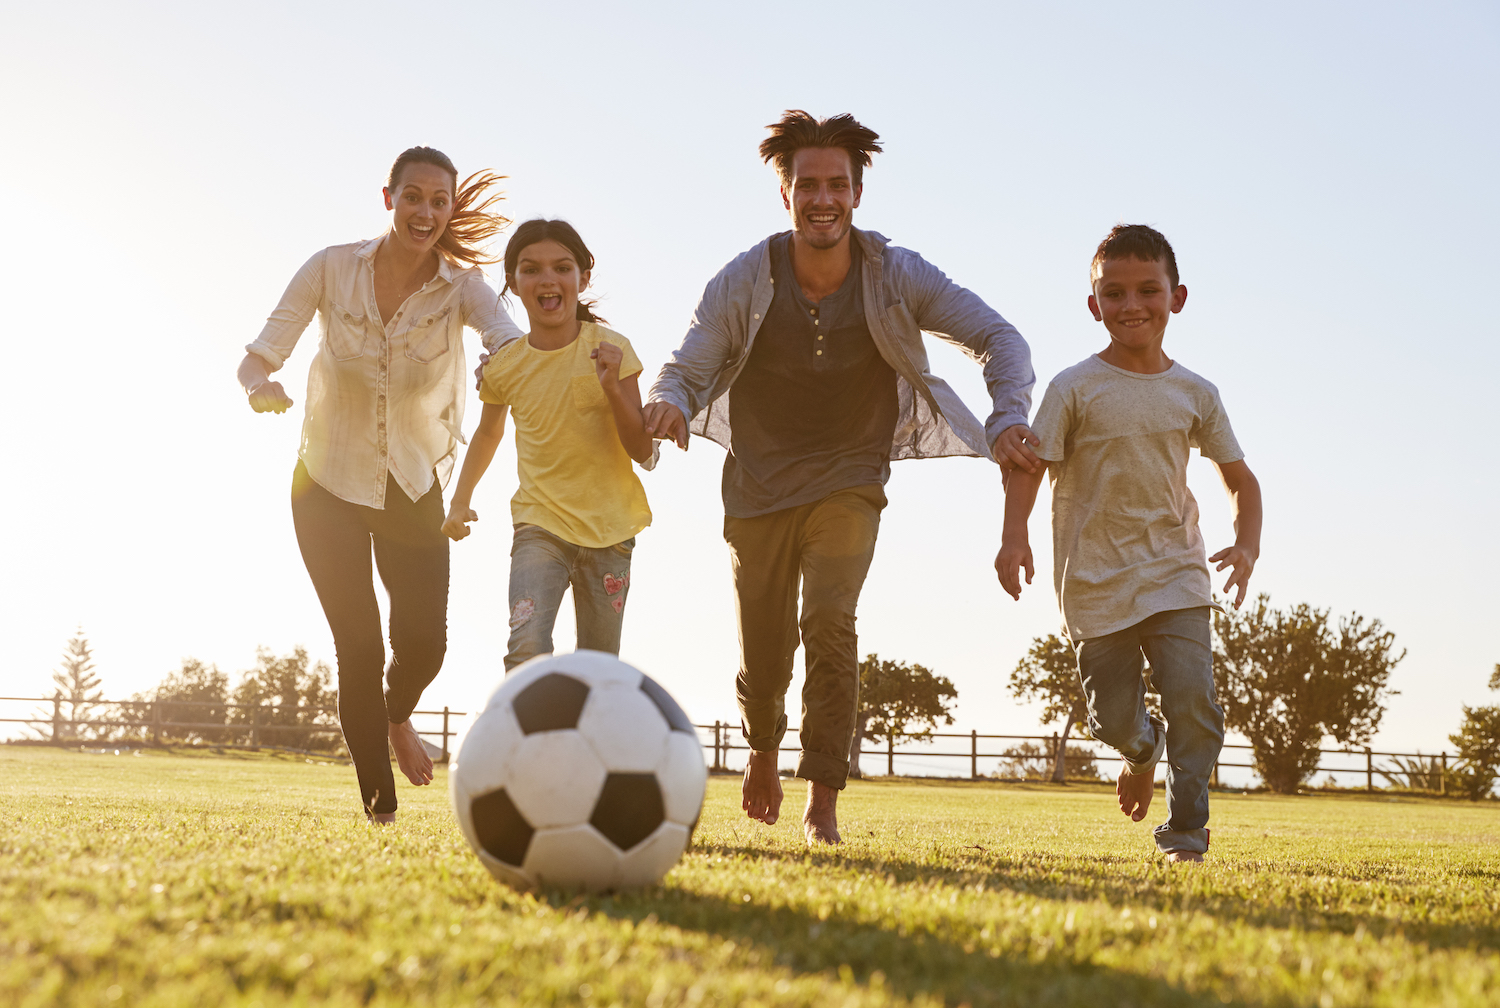 active-outdoors-family-play